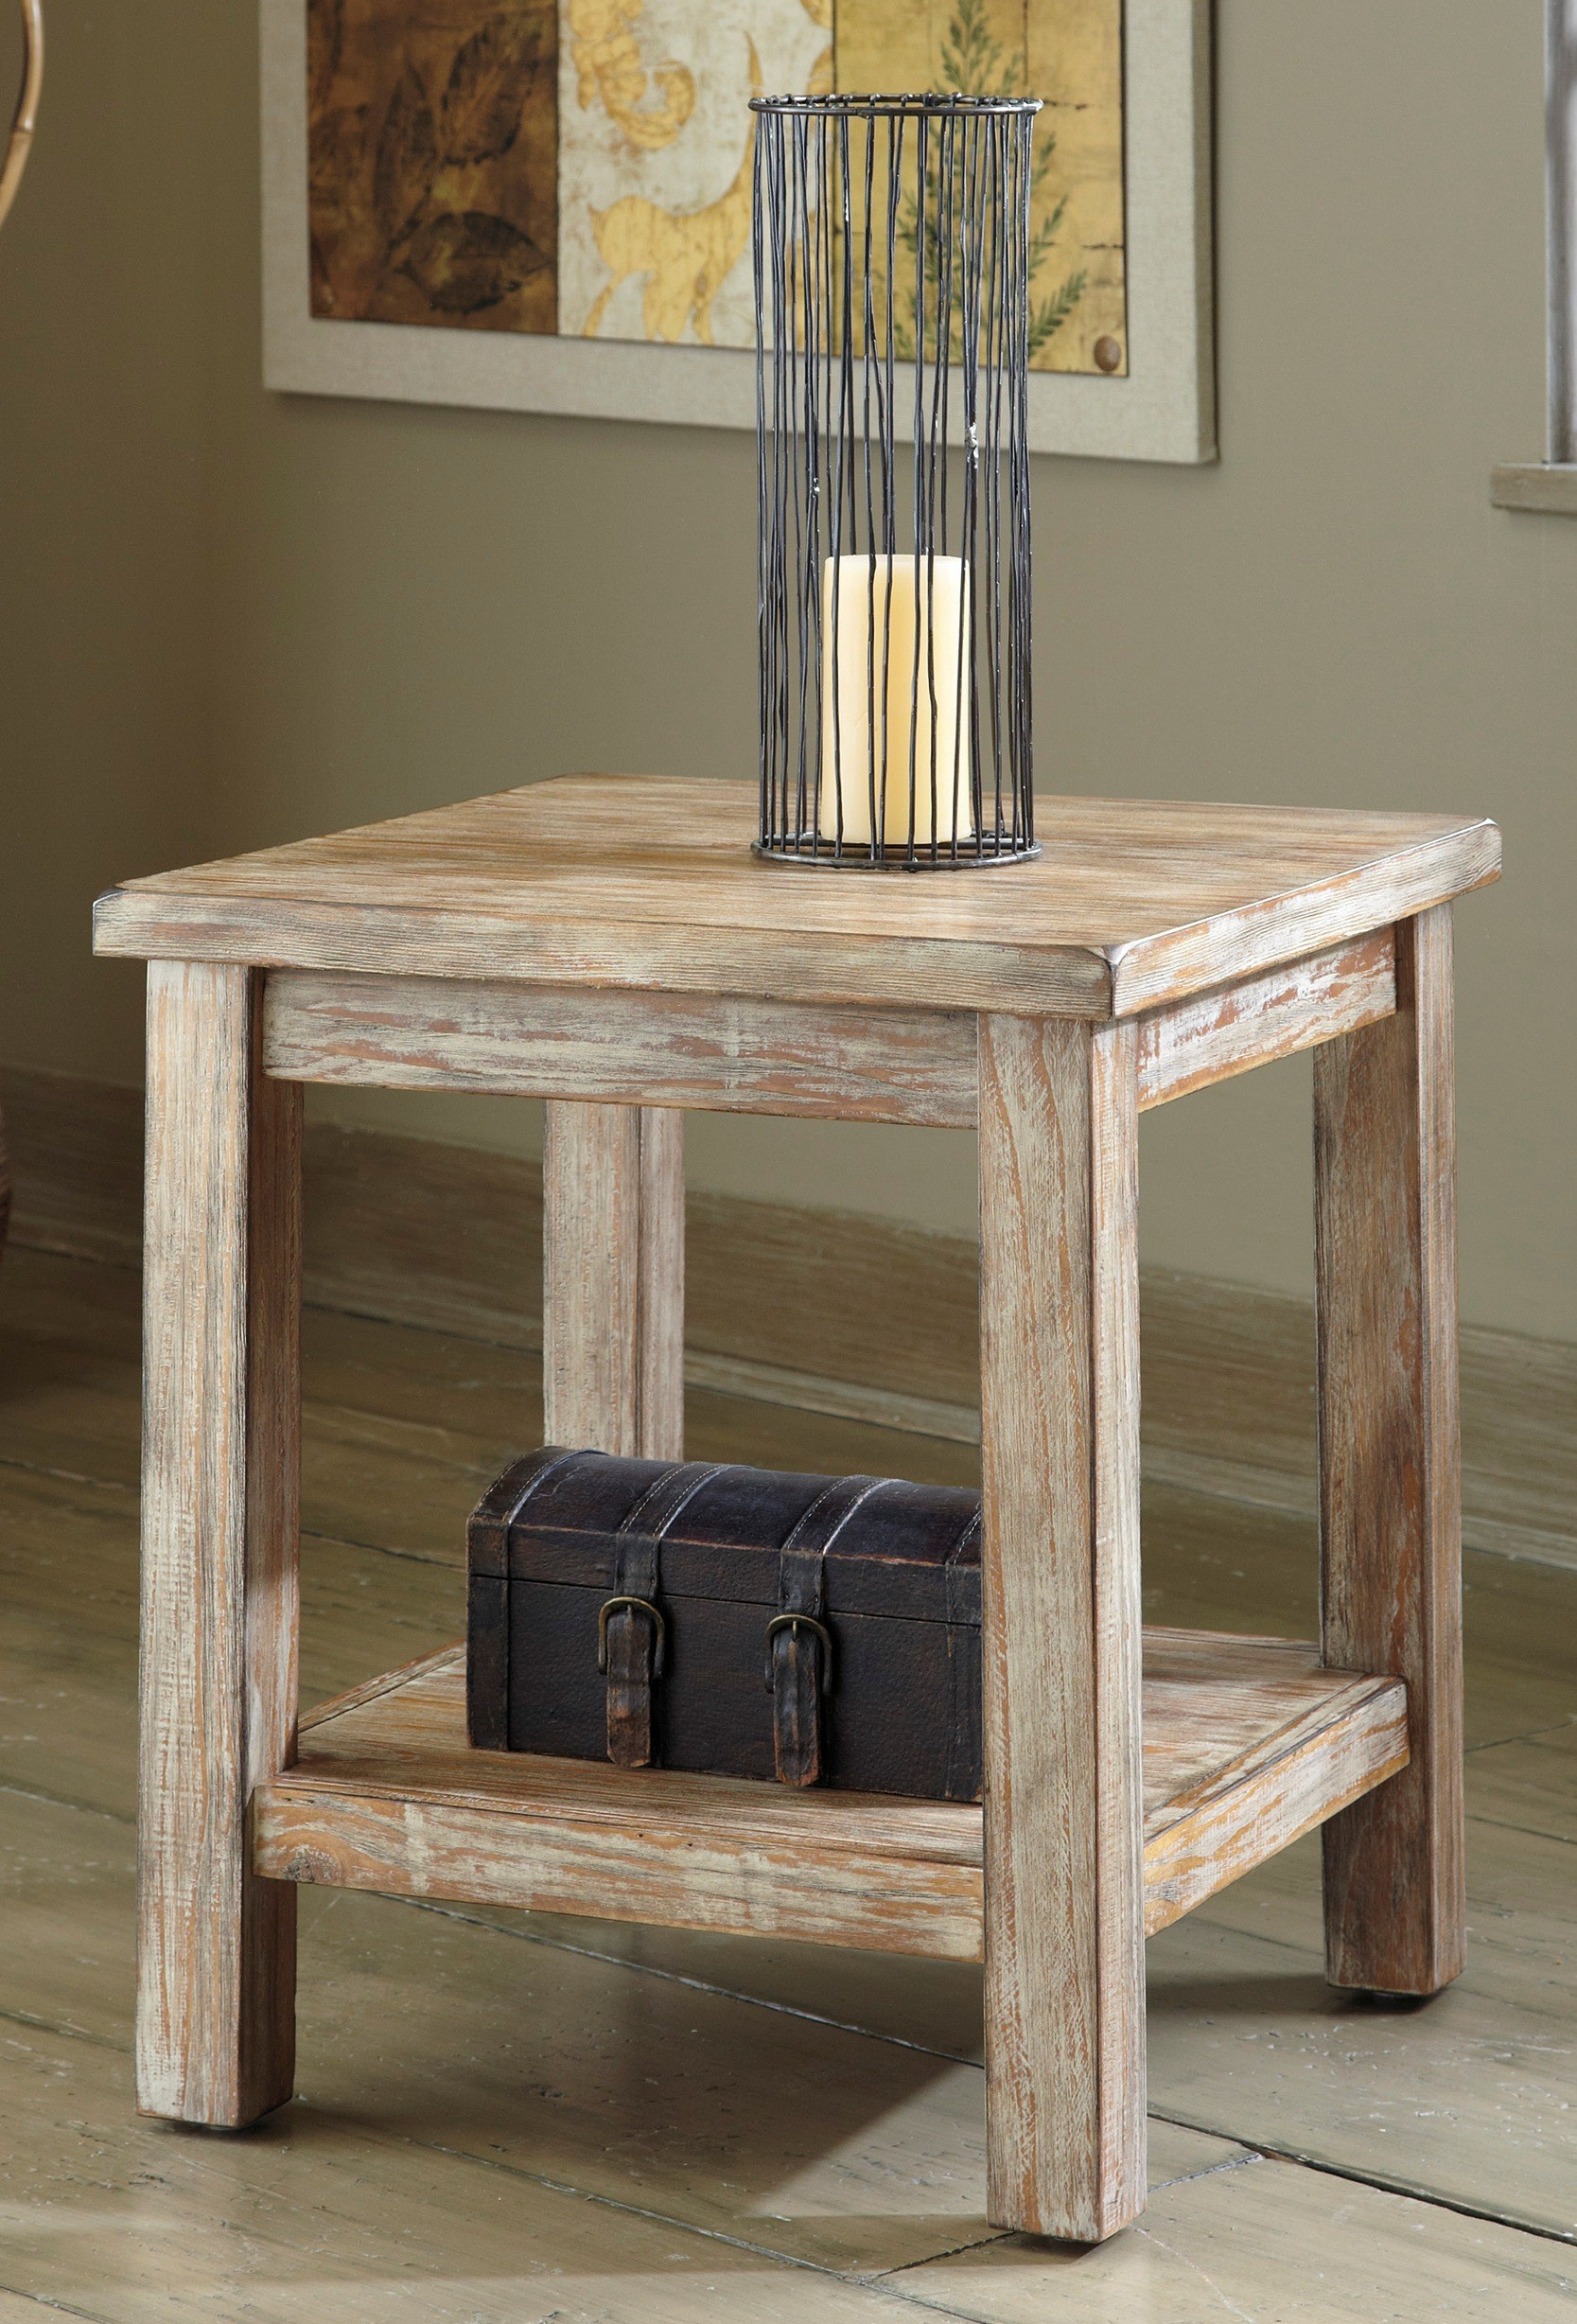 living room rustic furniture with adjustable round accent teak wood end table design idea square wooden side tier black metal mission candle holder finish jewelry storage box lid